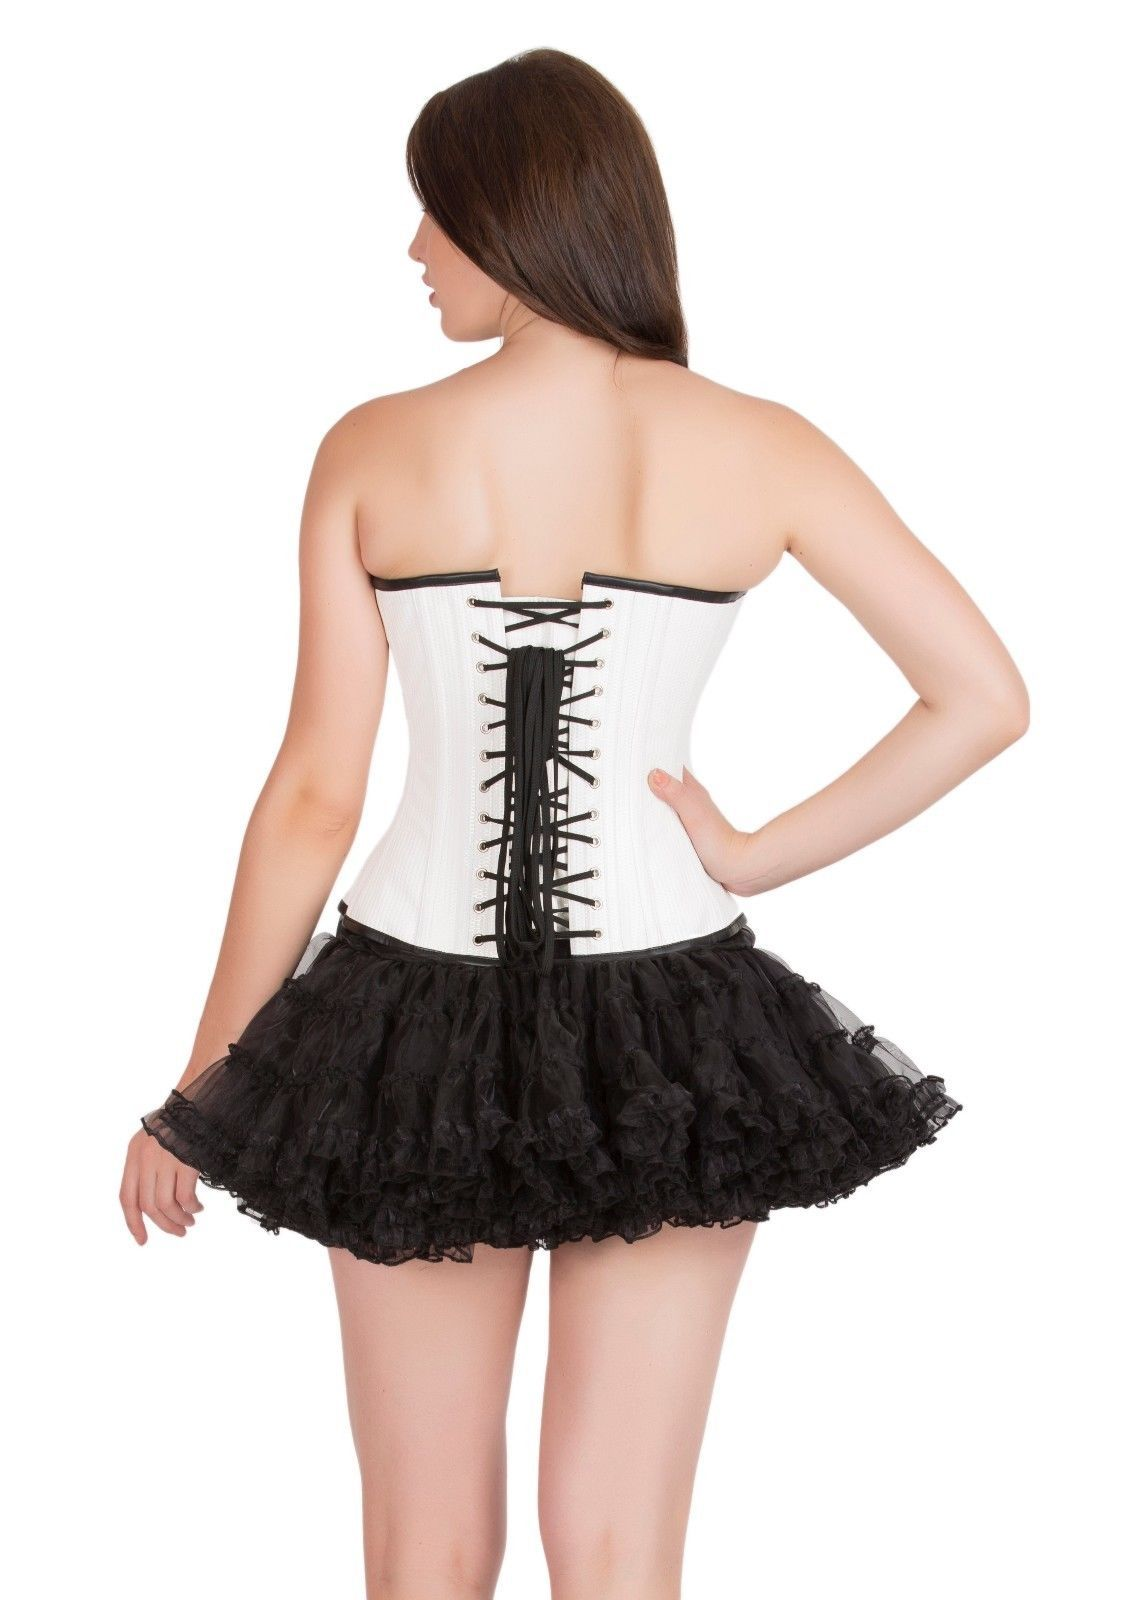 White Rice Leather Burlesque Gothic Steampunk Waist Training Overbust Corset Top